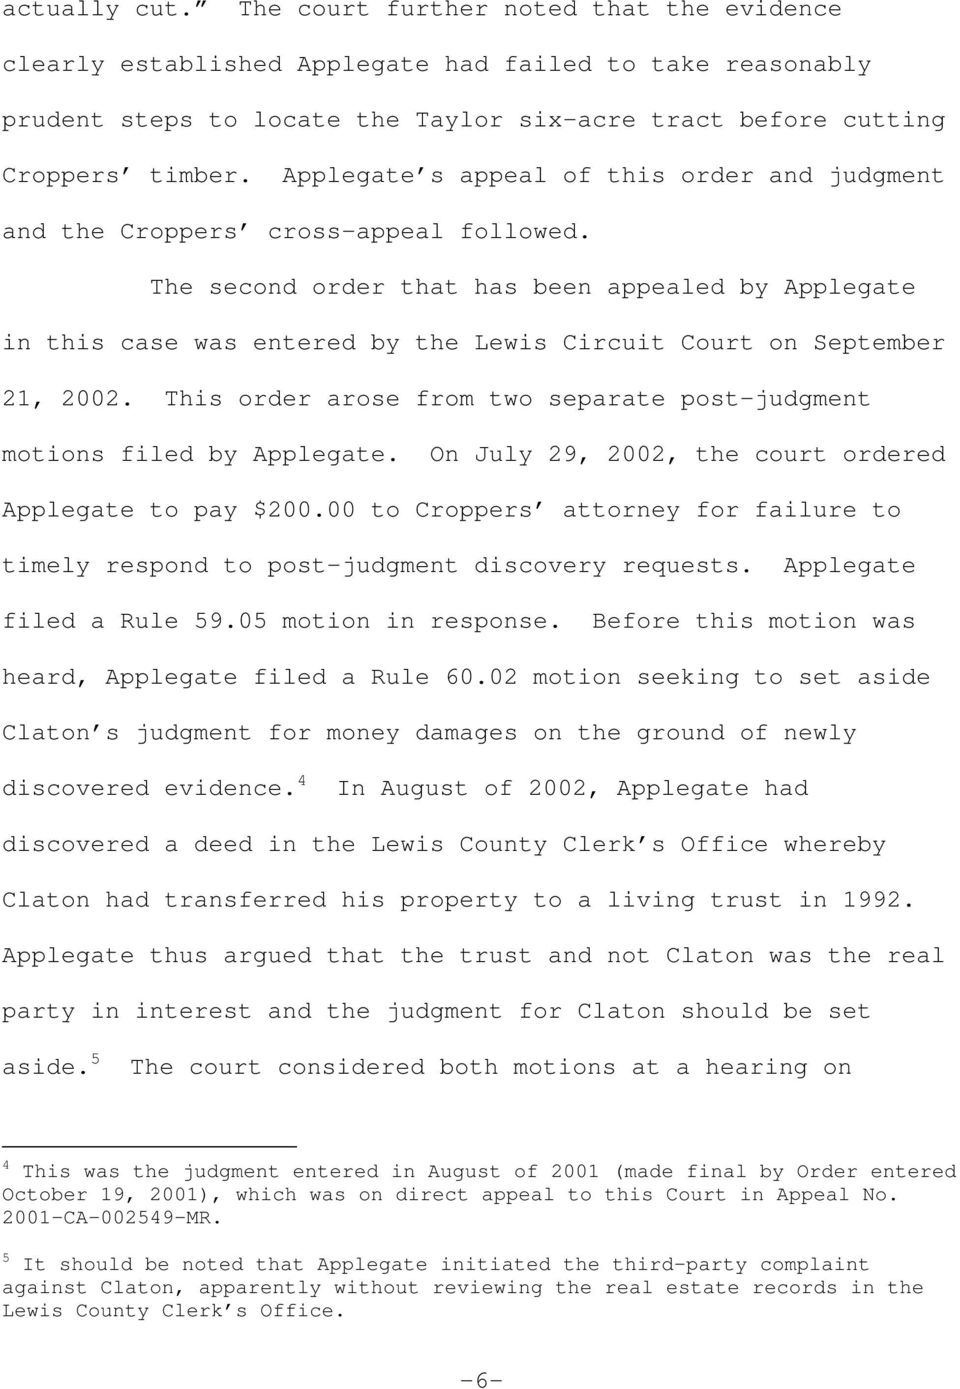 The second order that has been appealed by Applegate in this case was entered by the Lewis Circuit Court on September 21, 2002.